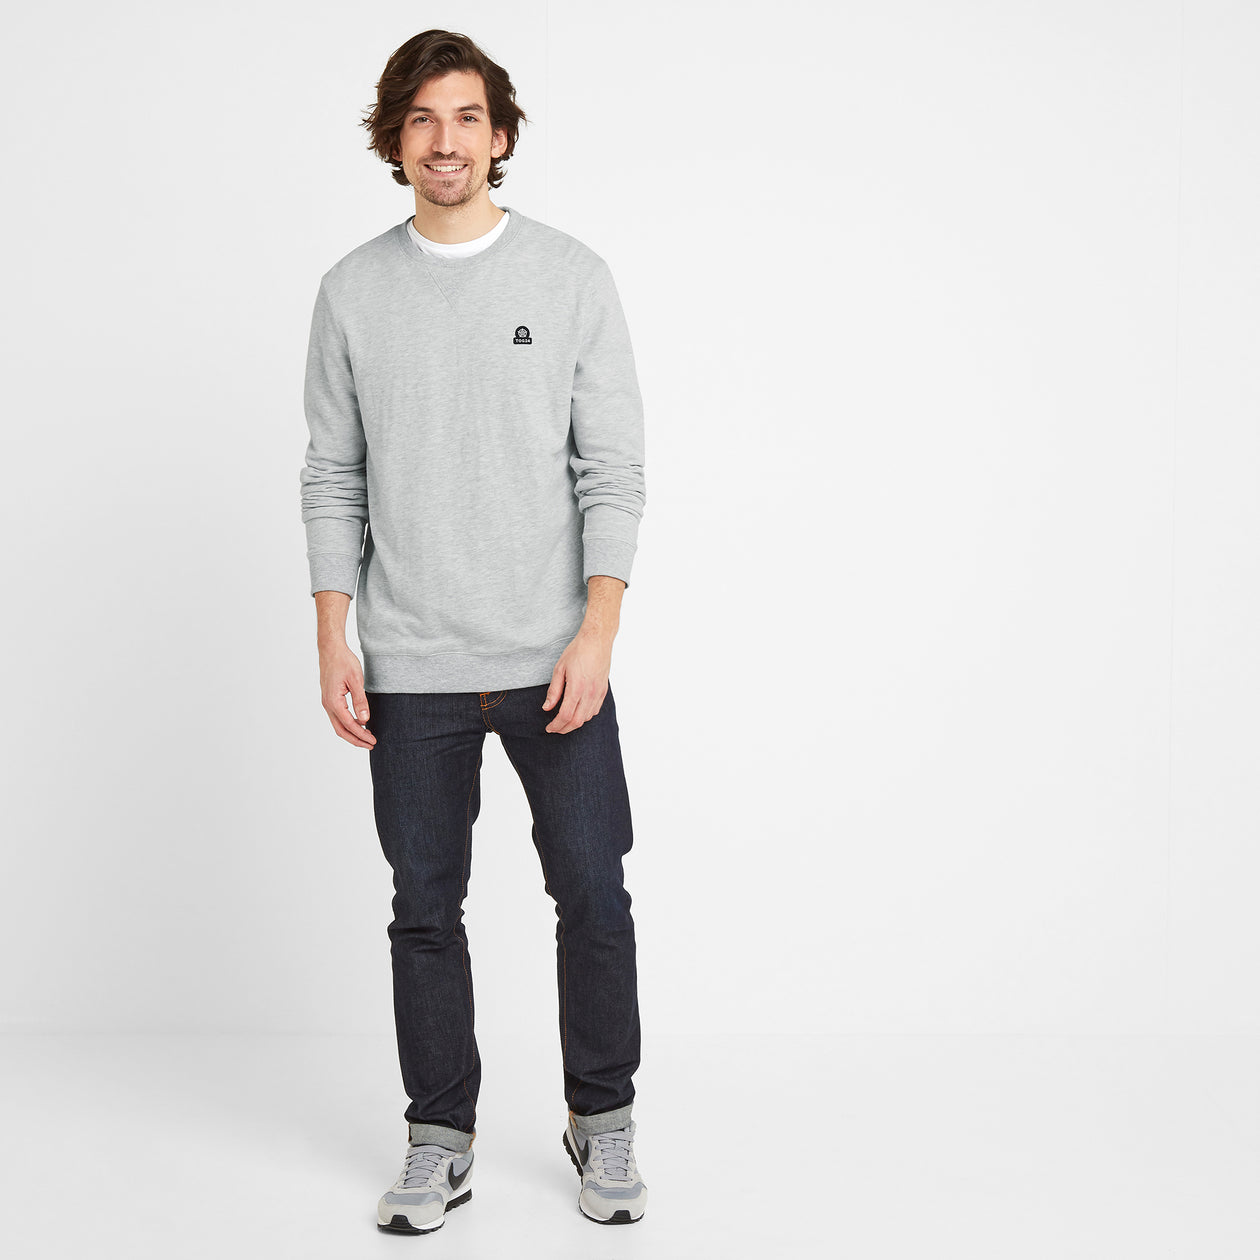 Dore Mens Crew Sweat - Light Grey Marl image 4